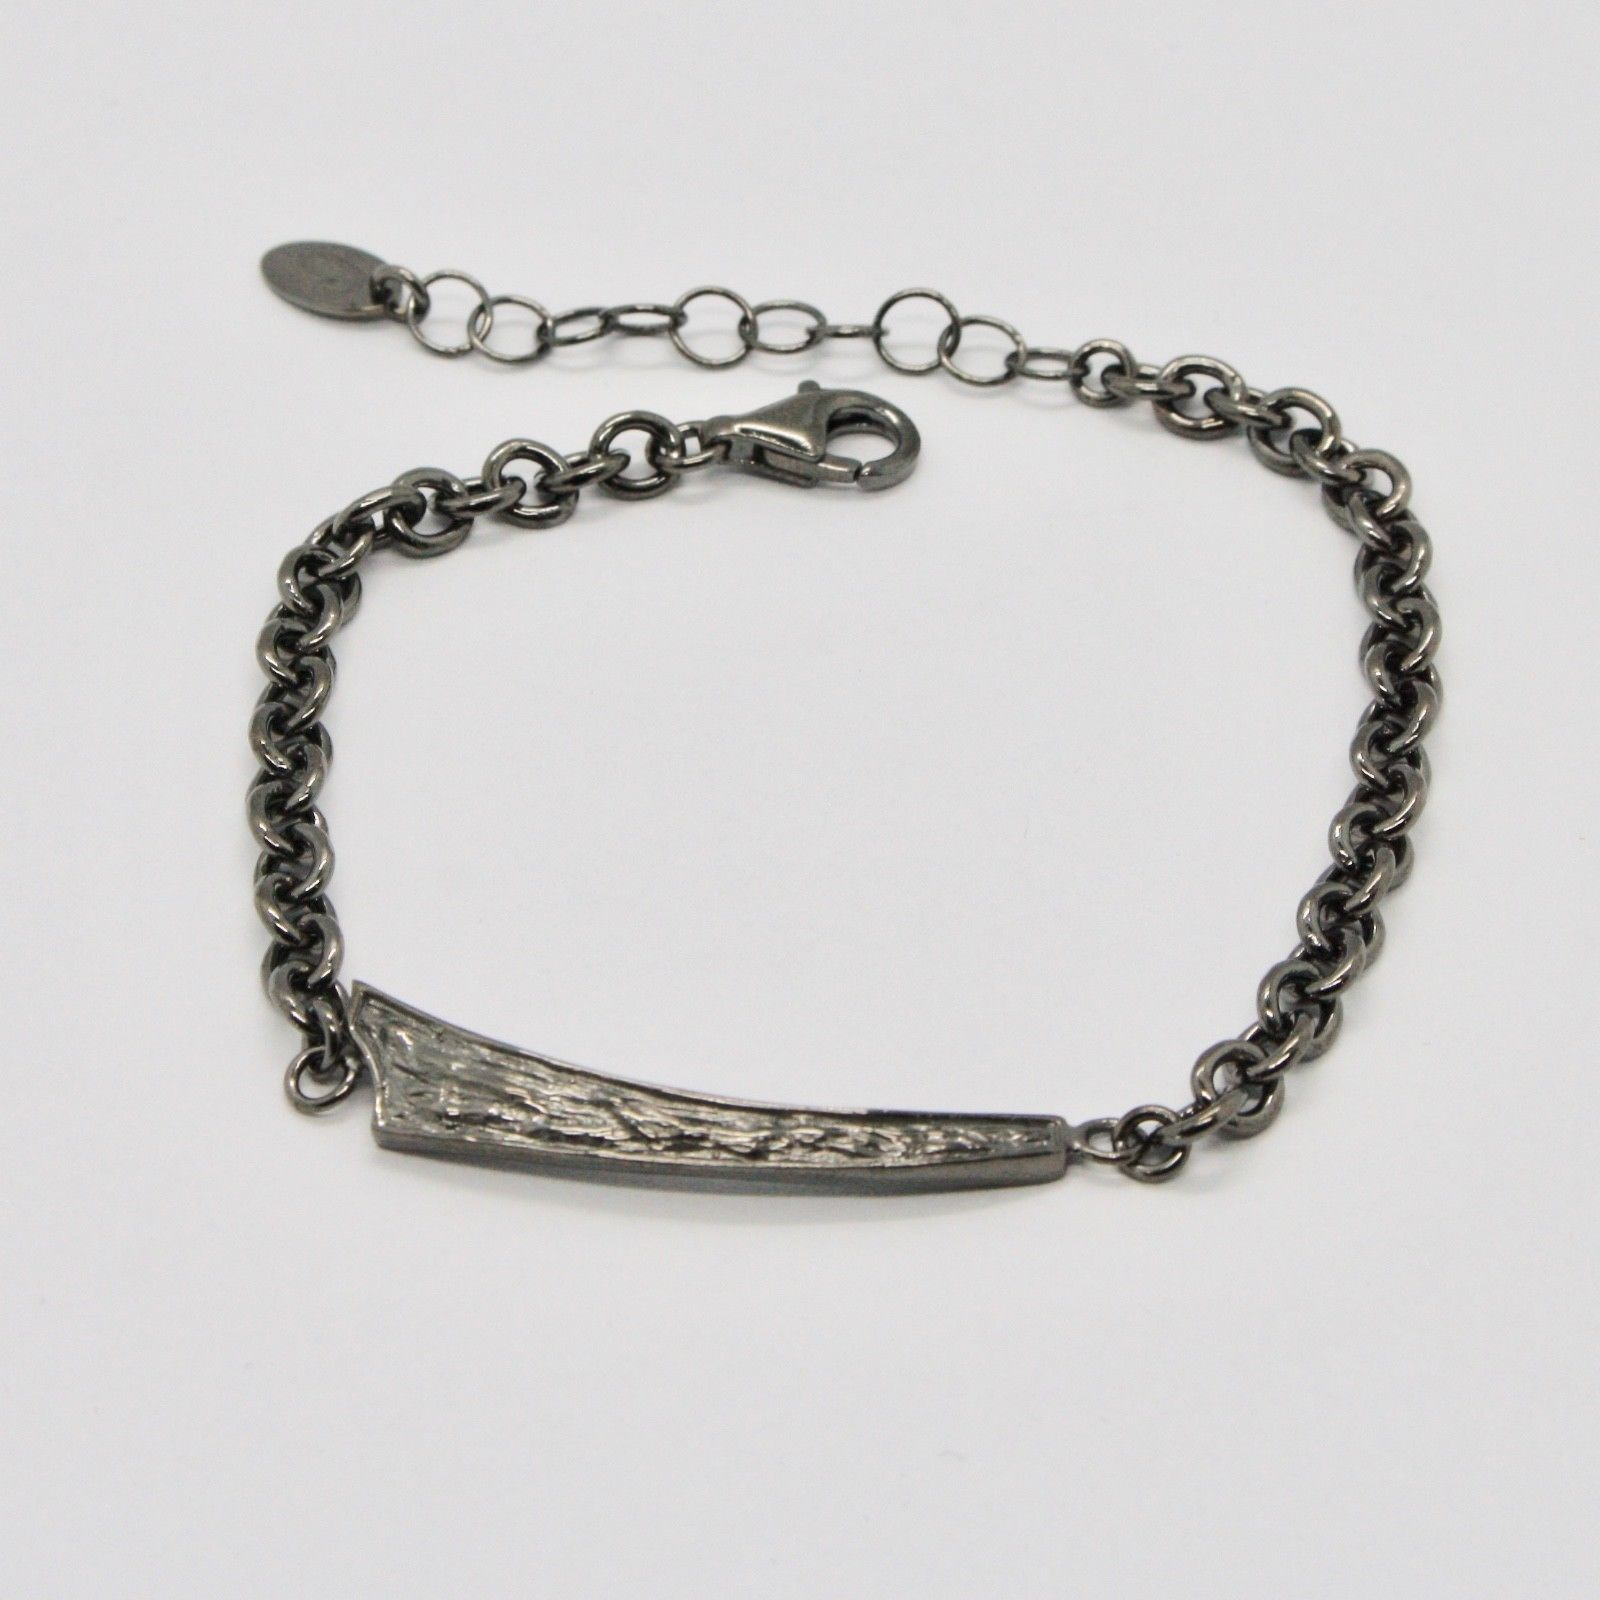 SILVER 925 BRACELET BURNISHED BLACK MAN WOMAN,ROLO',BY MARY JANE IELPO